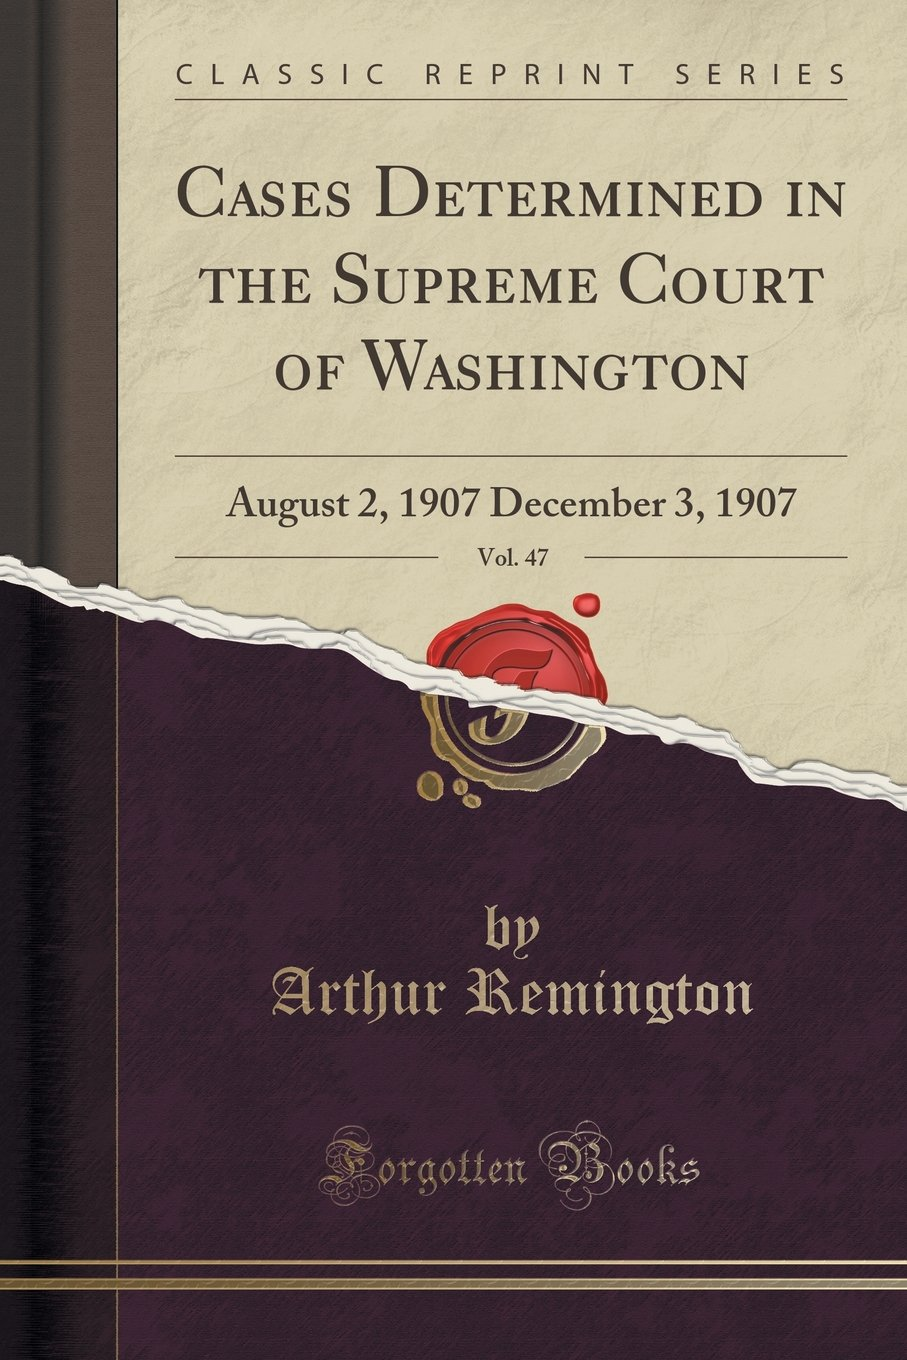 Cases Determined in the Supreme Court of Washington, Vol. 47: August 2, 1907 December 3, 1907 (Classic Reprint) pdf